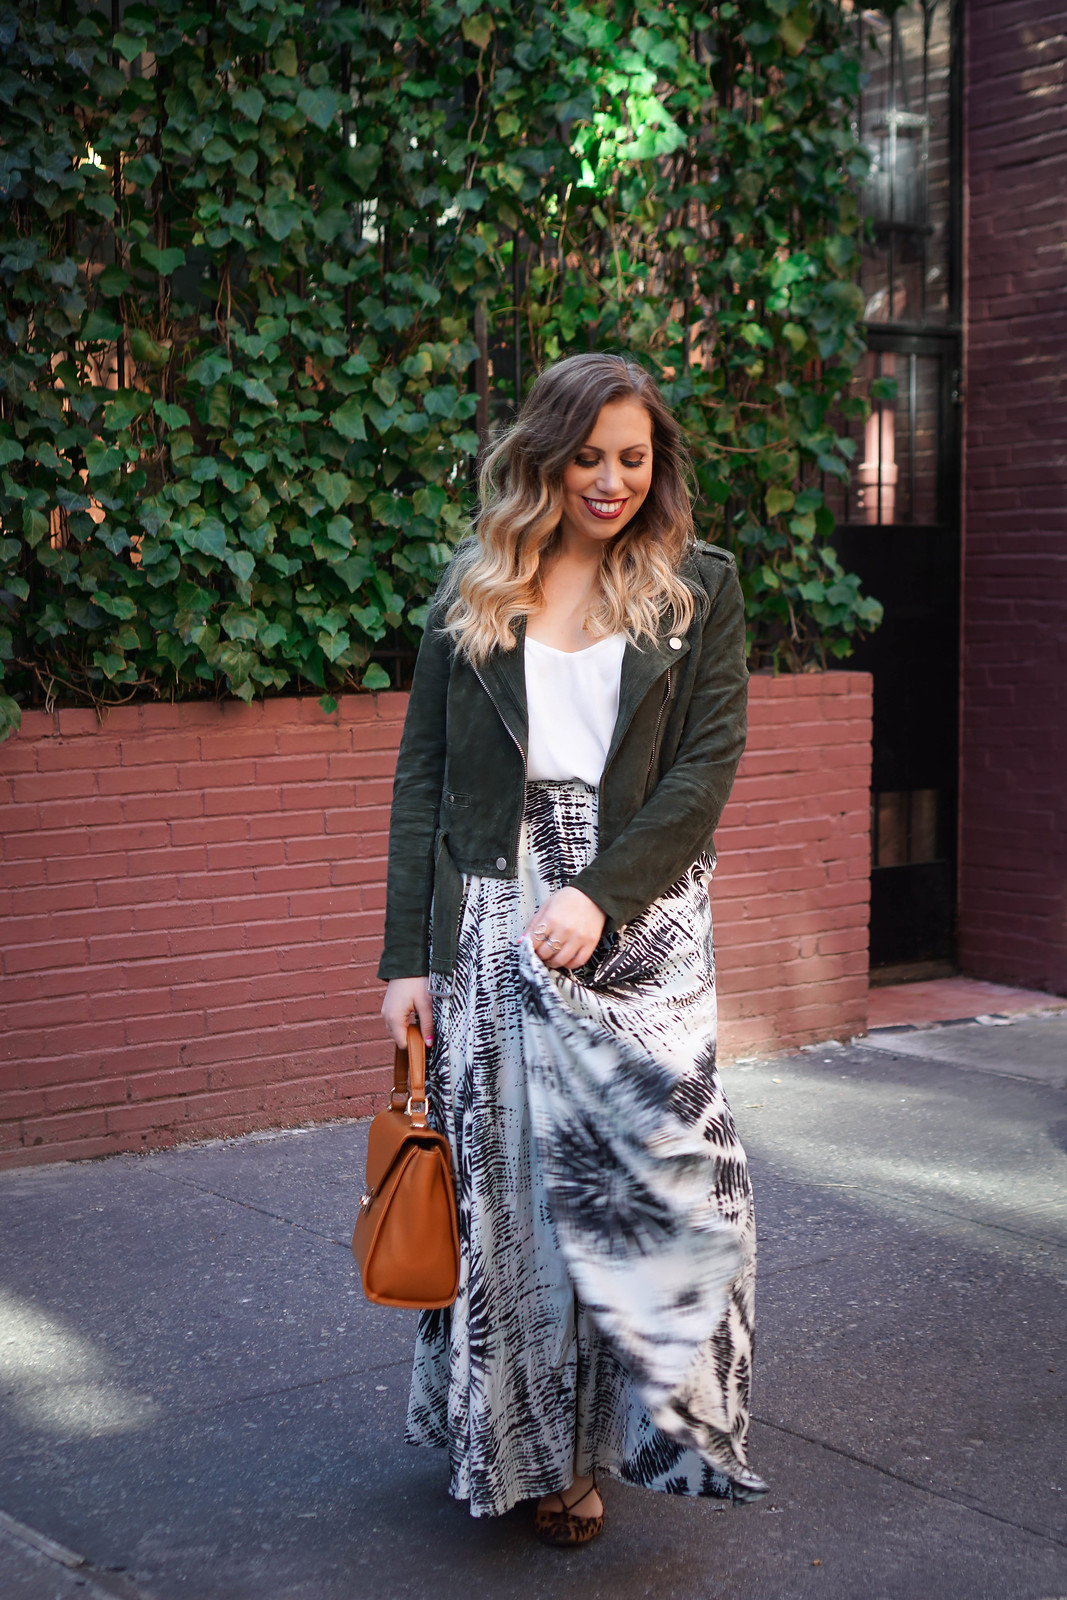 Printed Maxi Skirt | Olive Suede Moto Jacket | Curly Blonde Hair | Urban Decay Vice Liquid Lipstick in 714 | Spring NYC Outfit